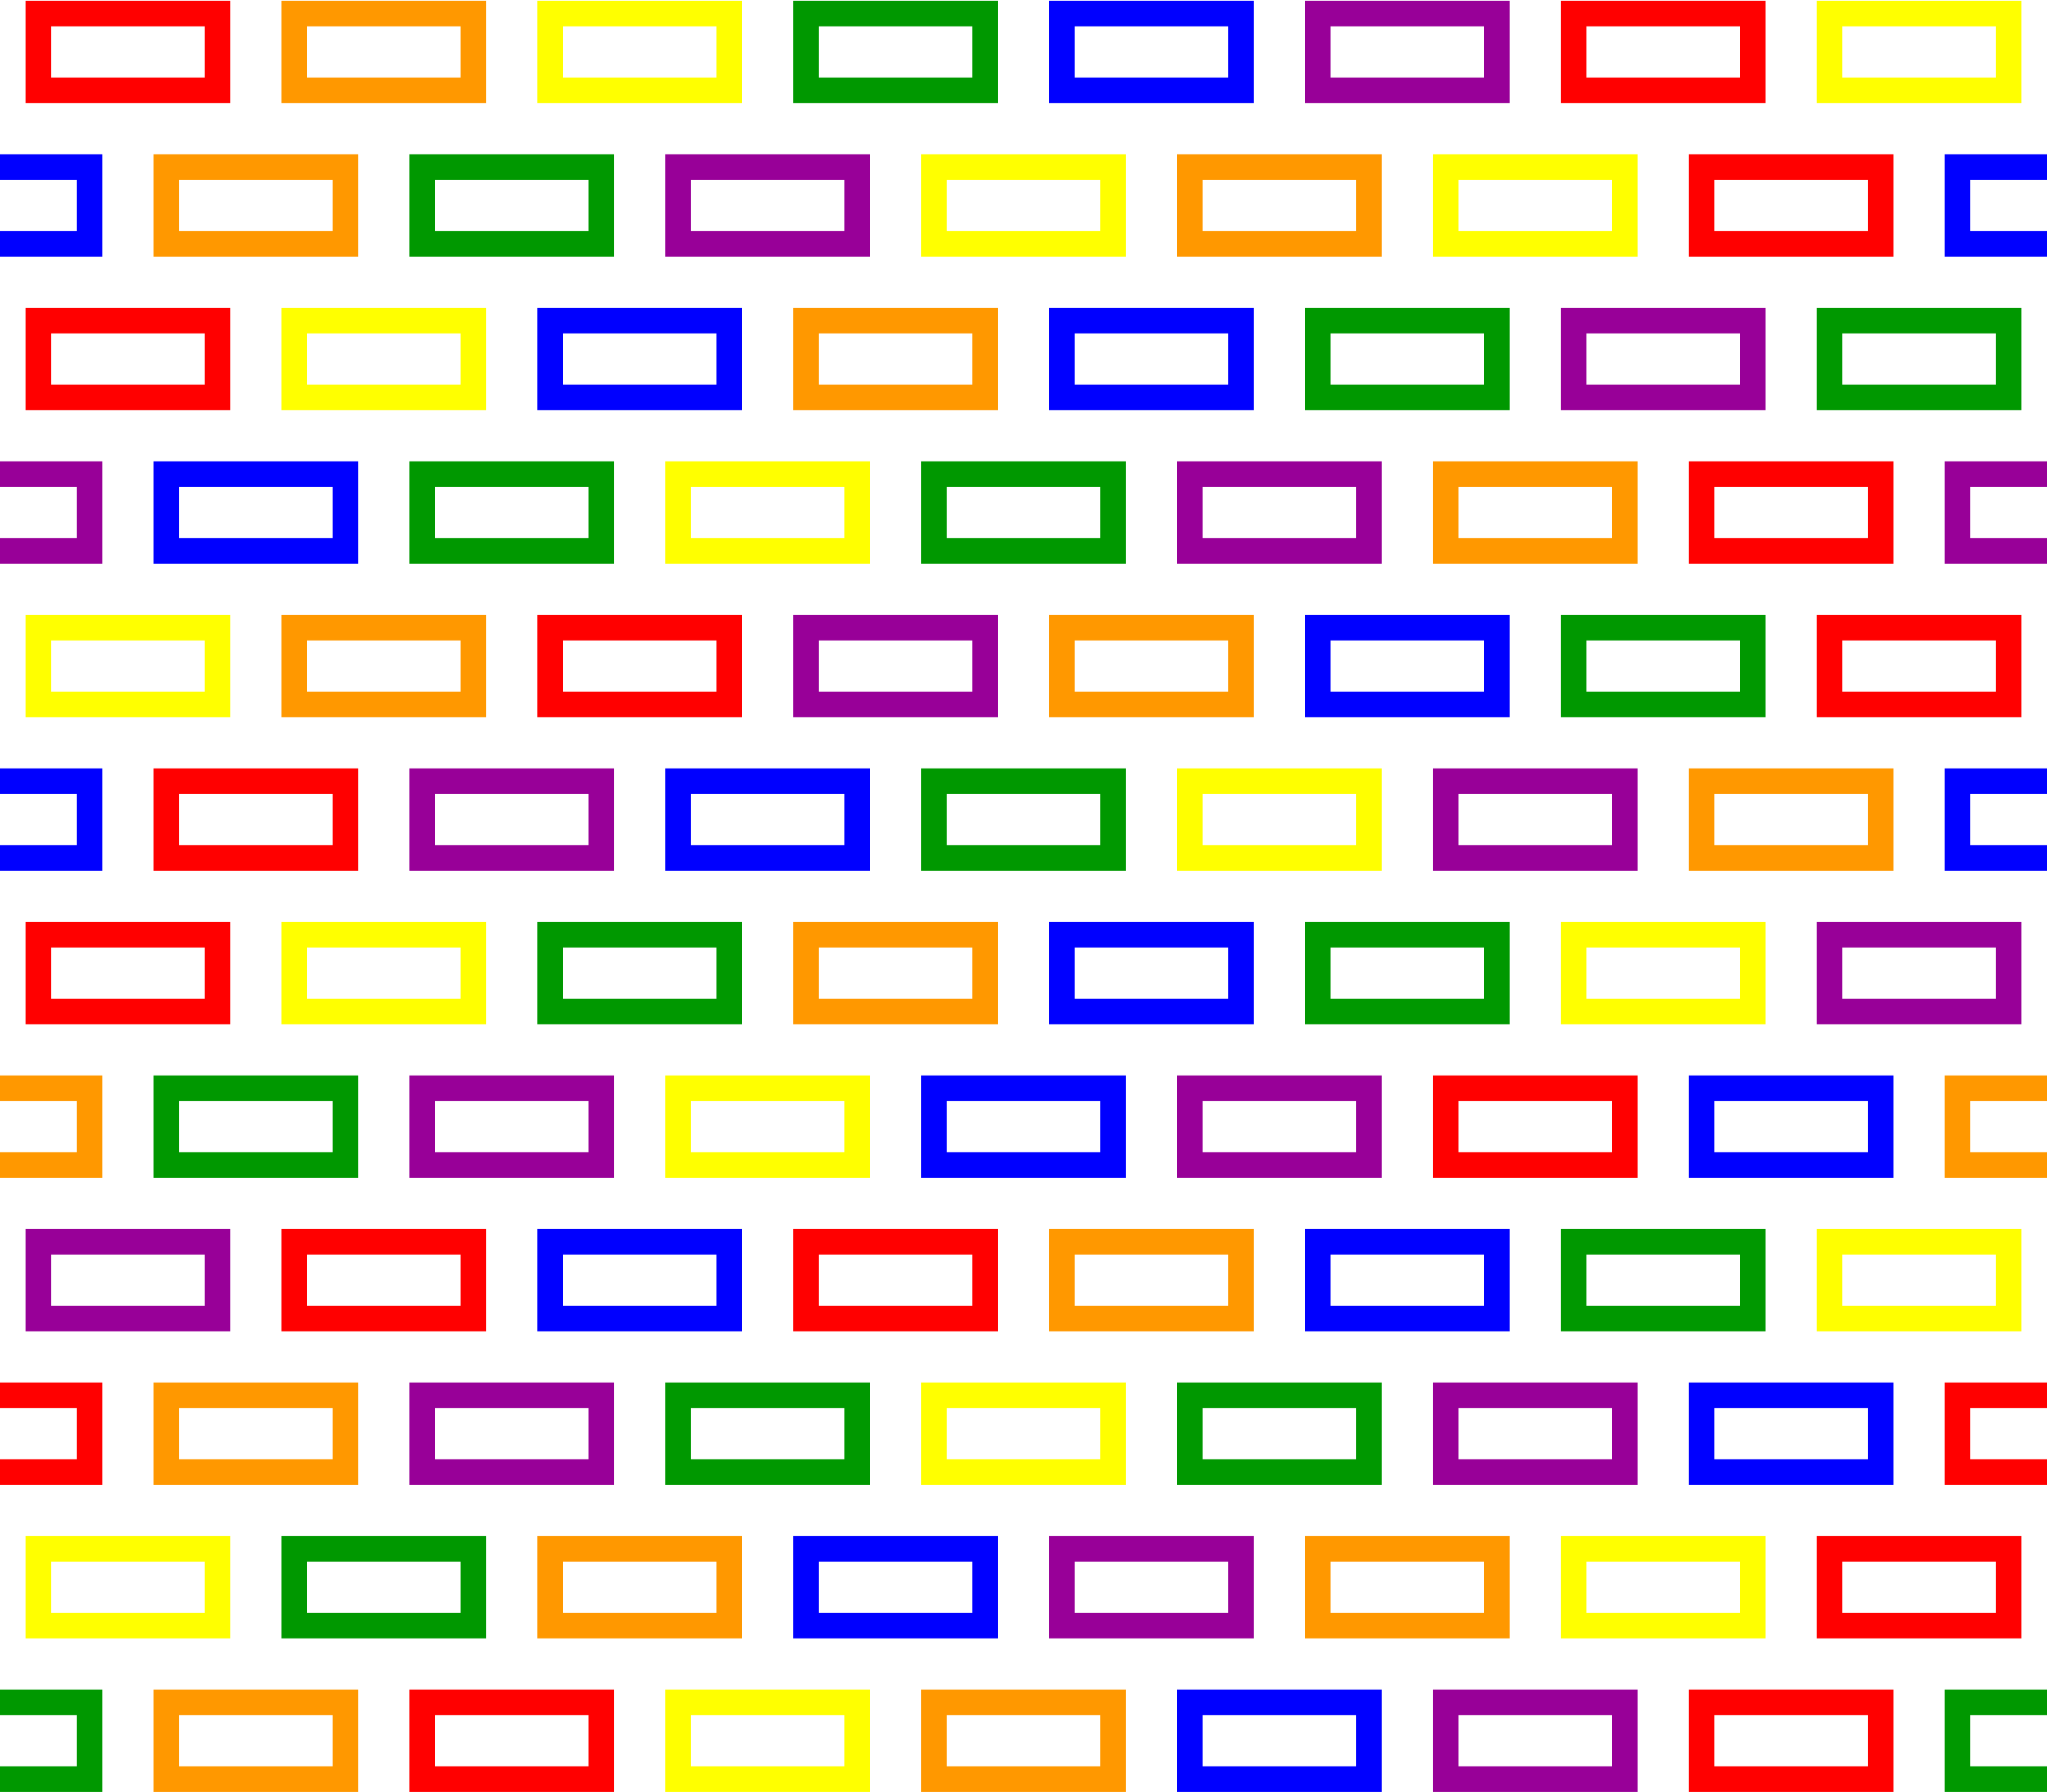 Colourful bricks pattern (no background) by Firkin